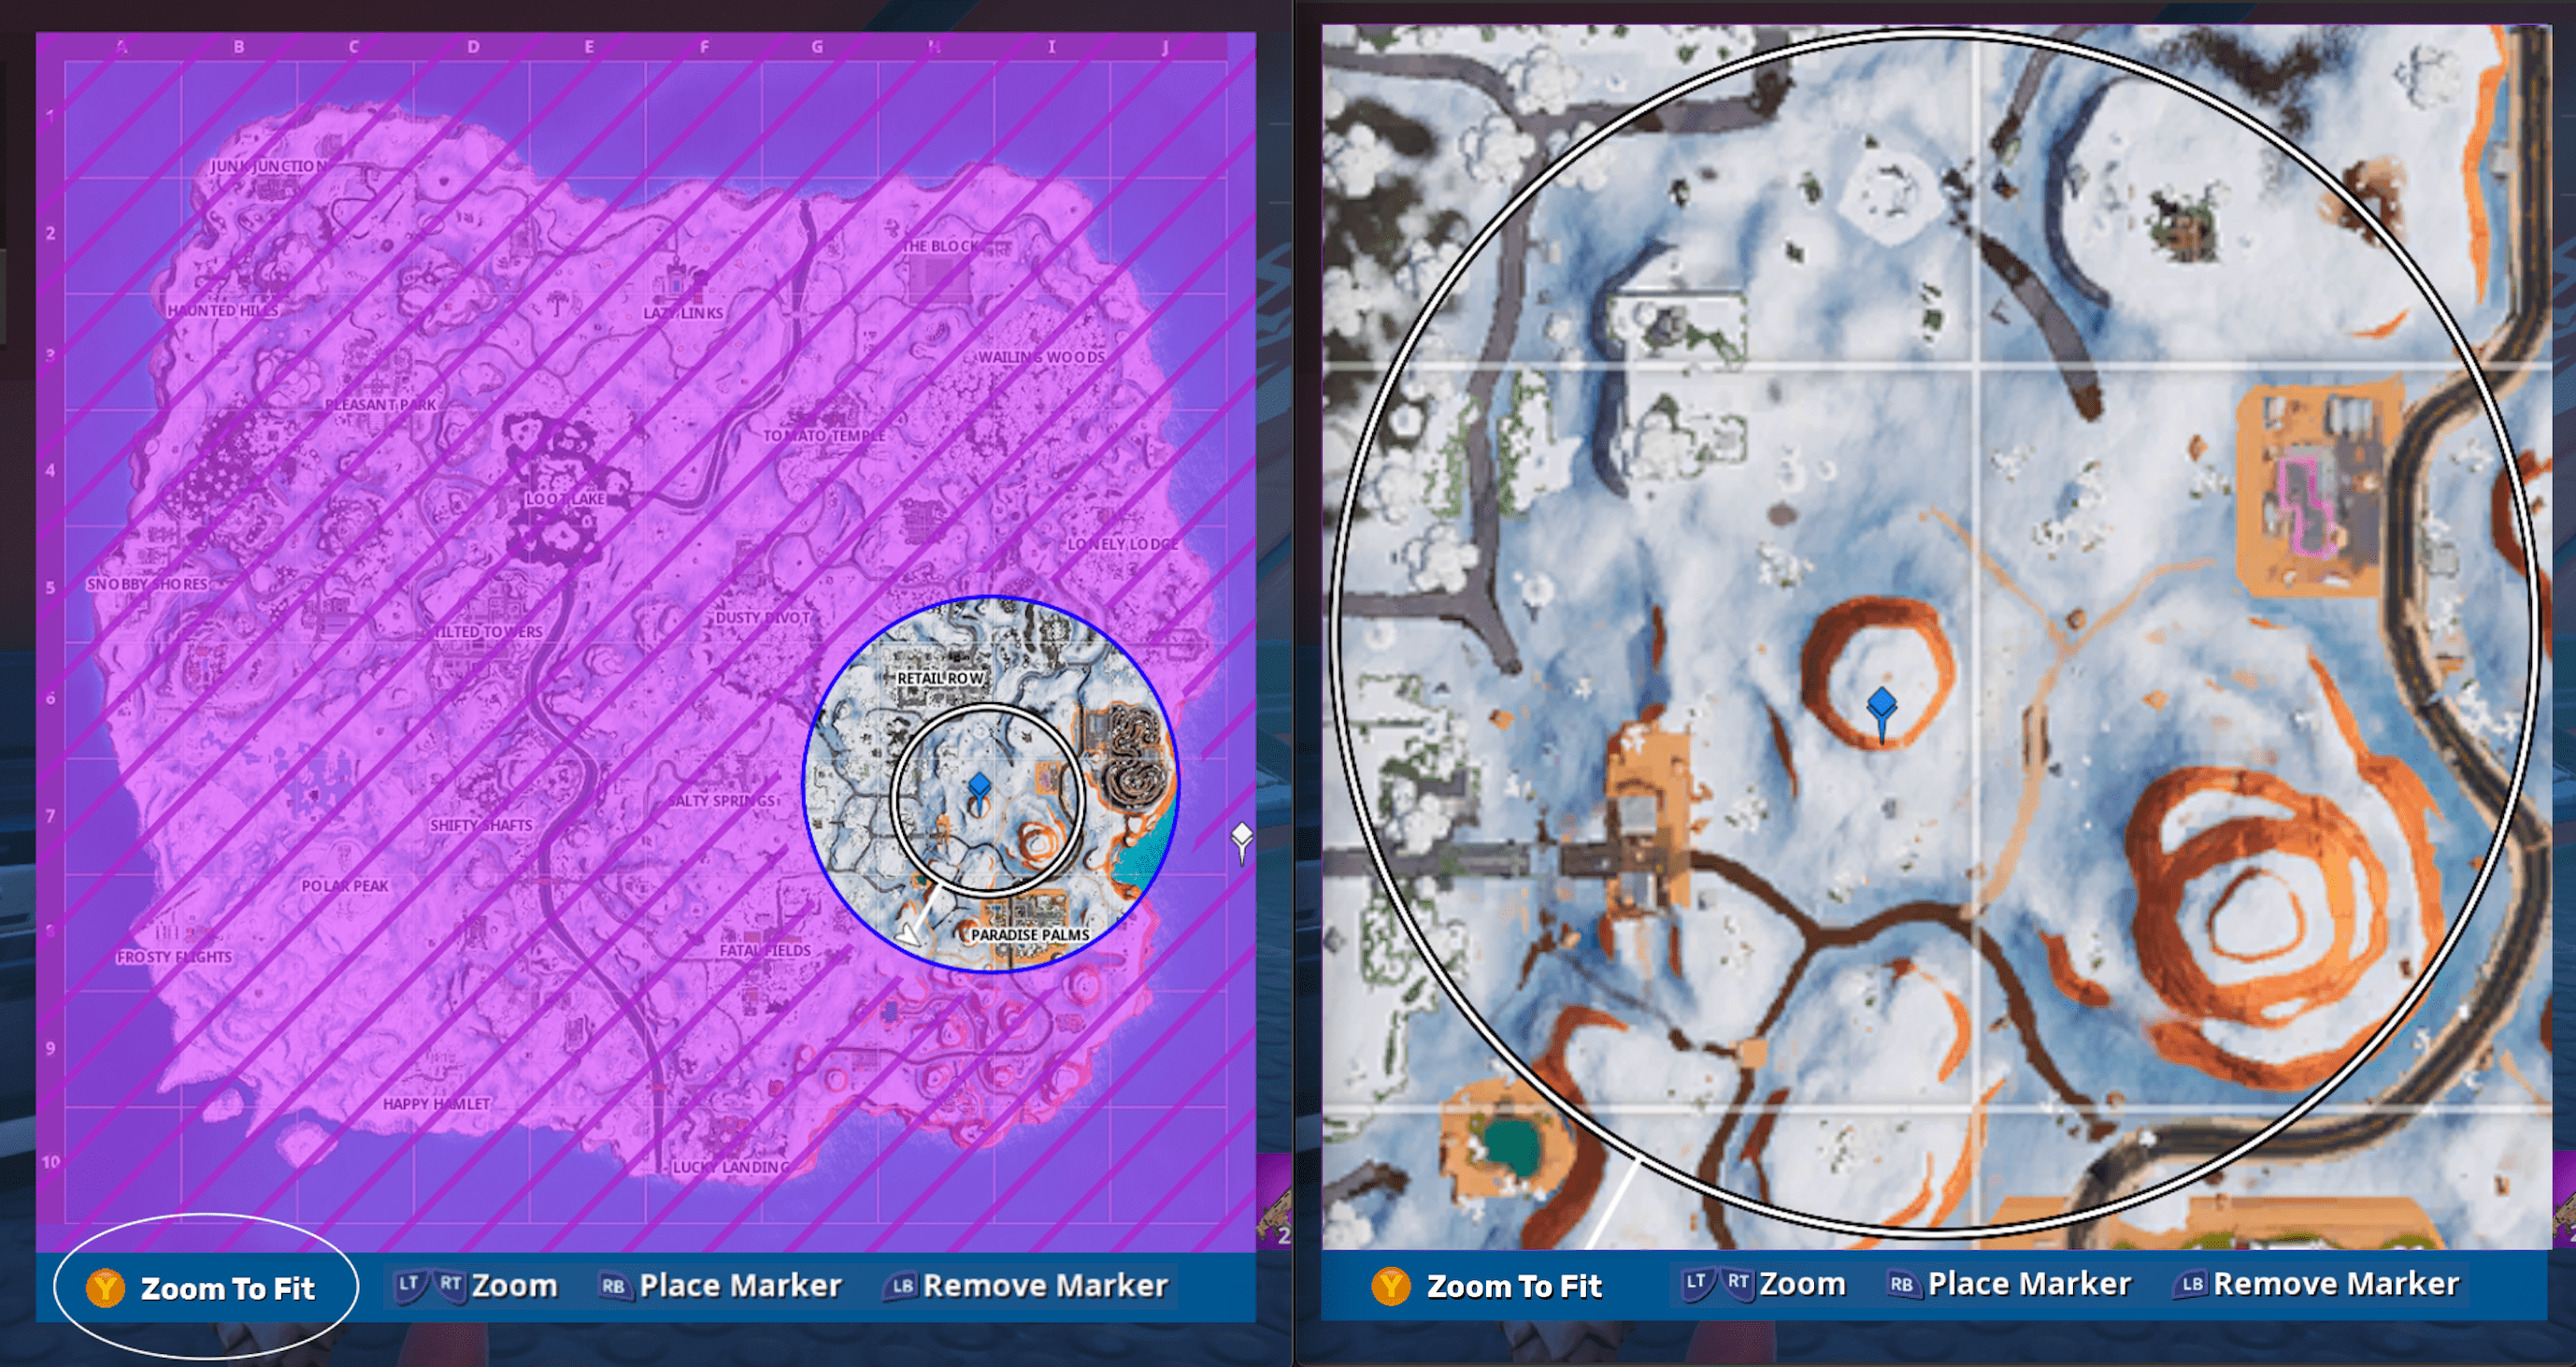 Fortnite Zoom to Fit Map Concept